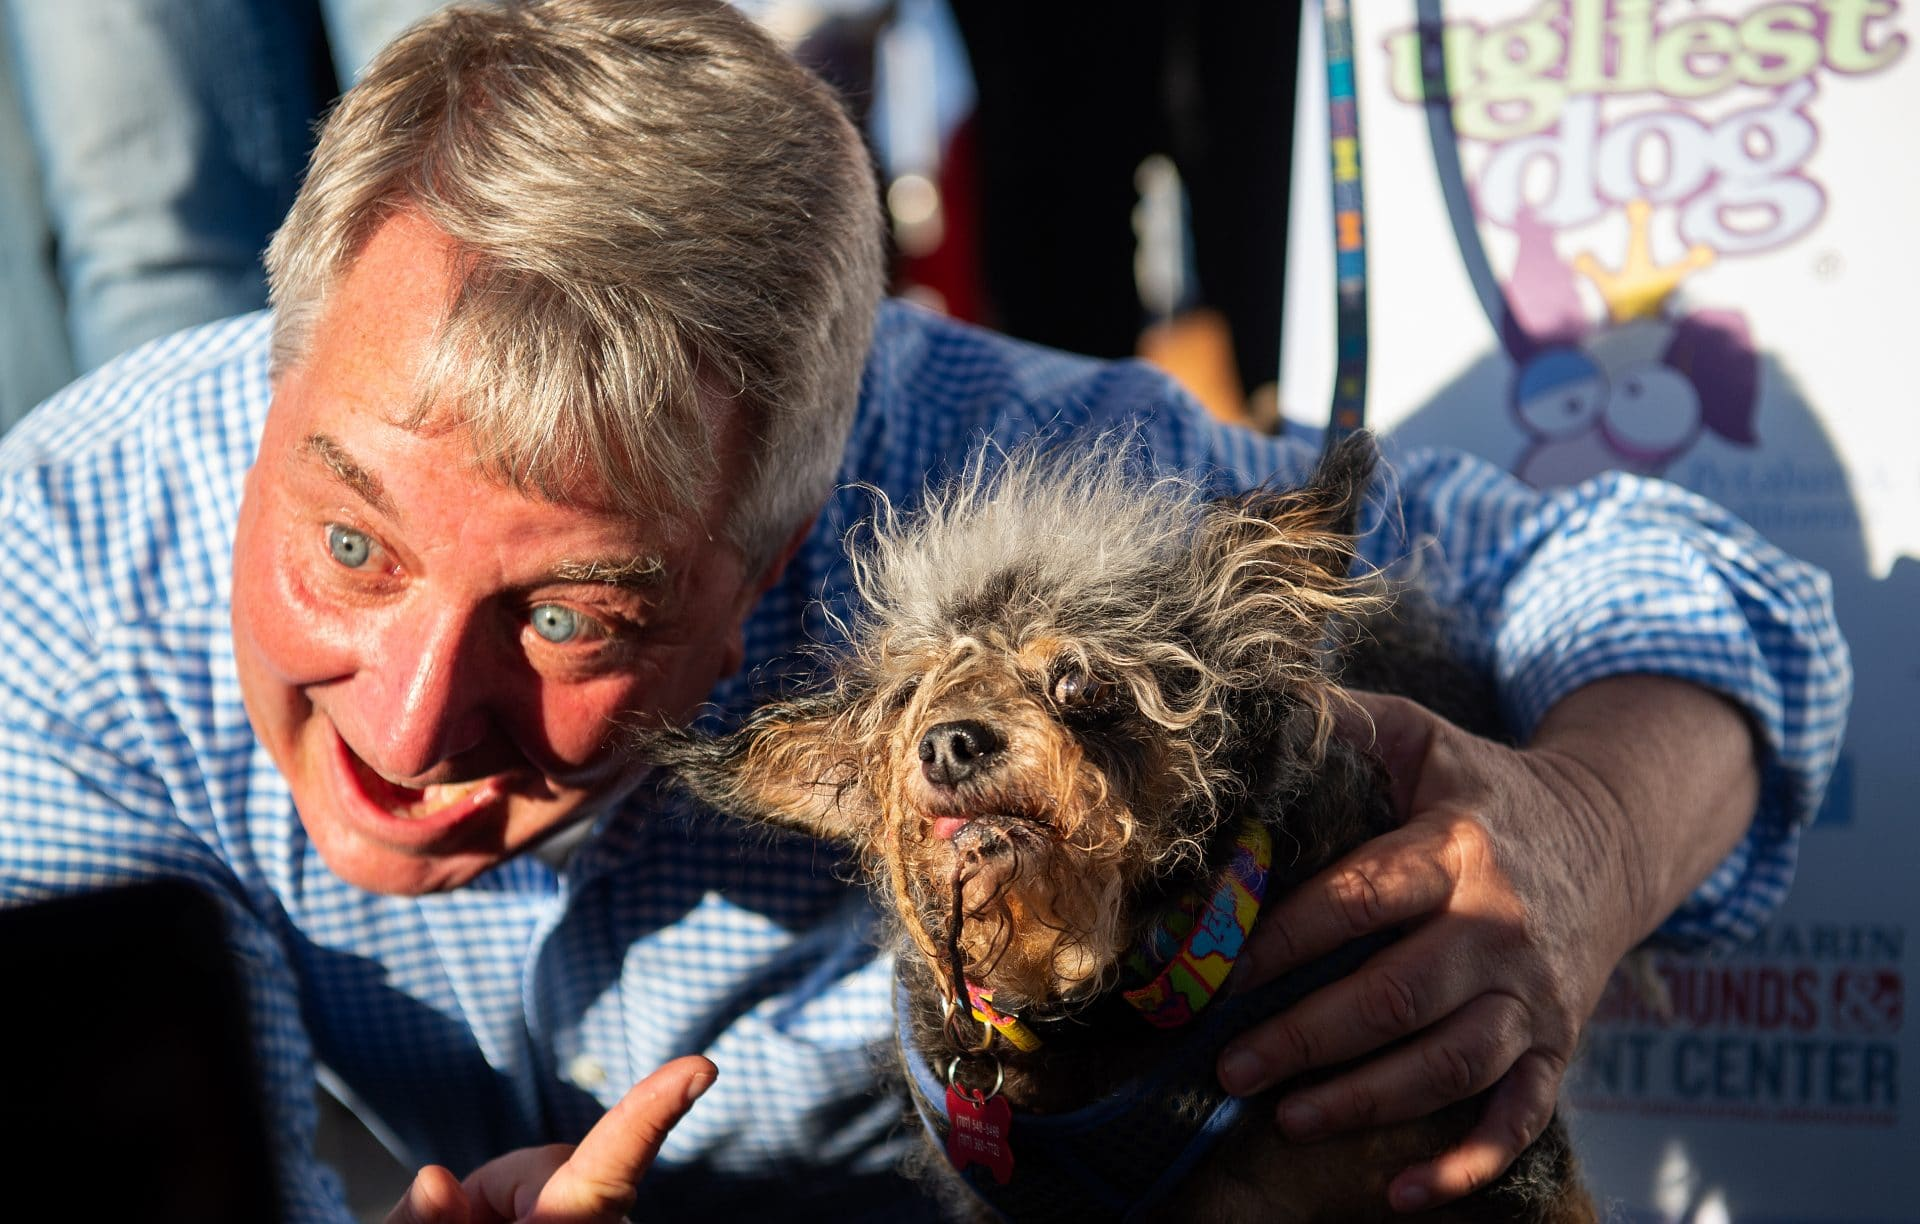 World's Ugliest Dog Contest vincitore 2019